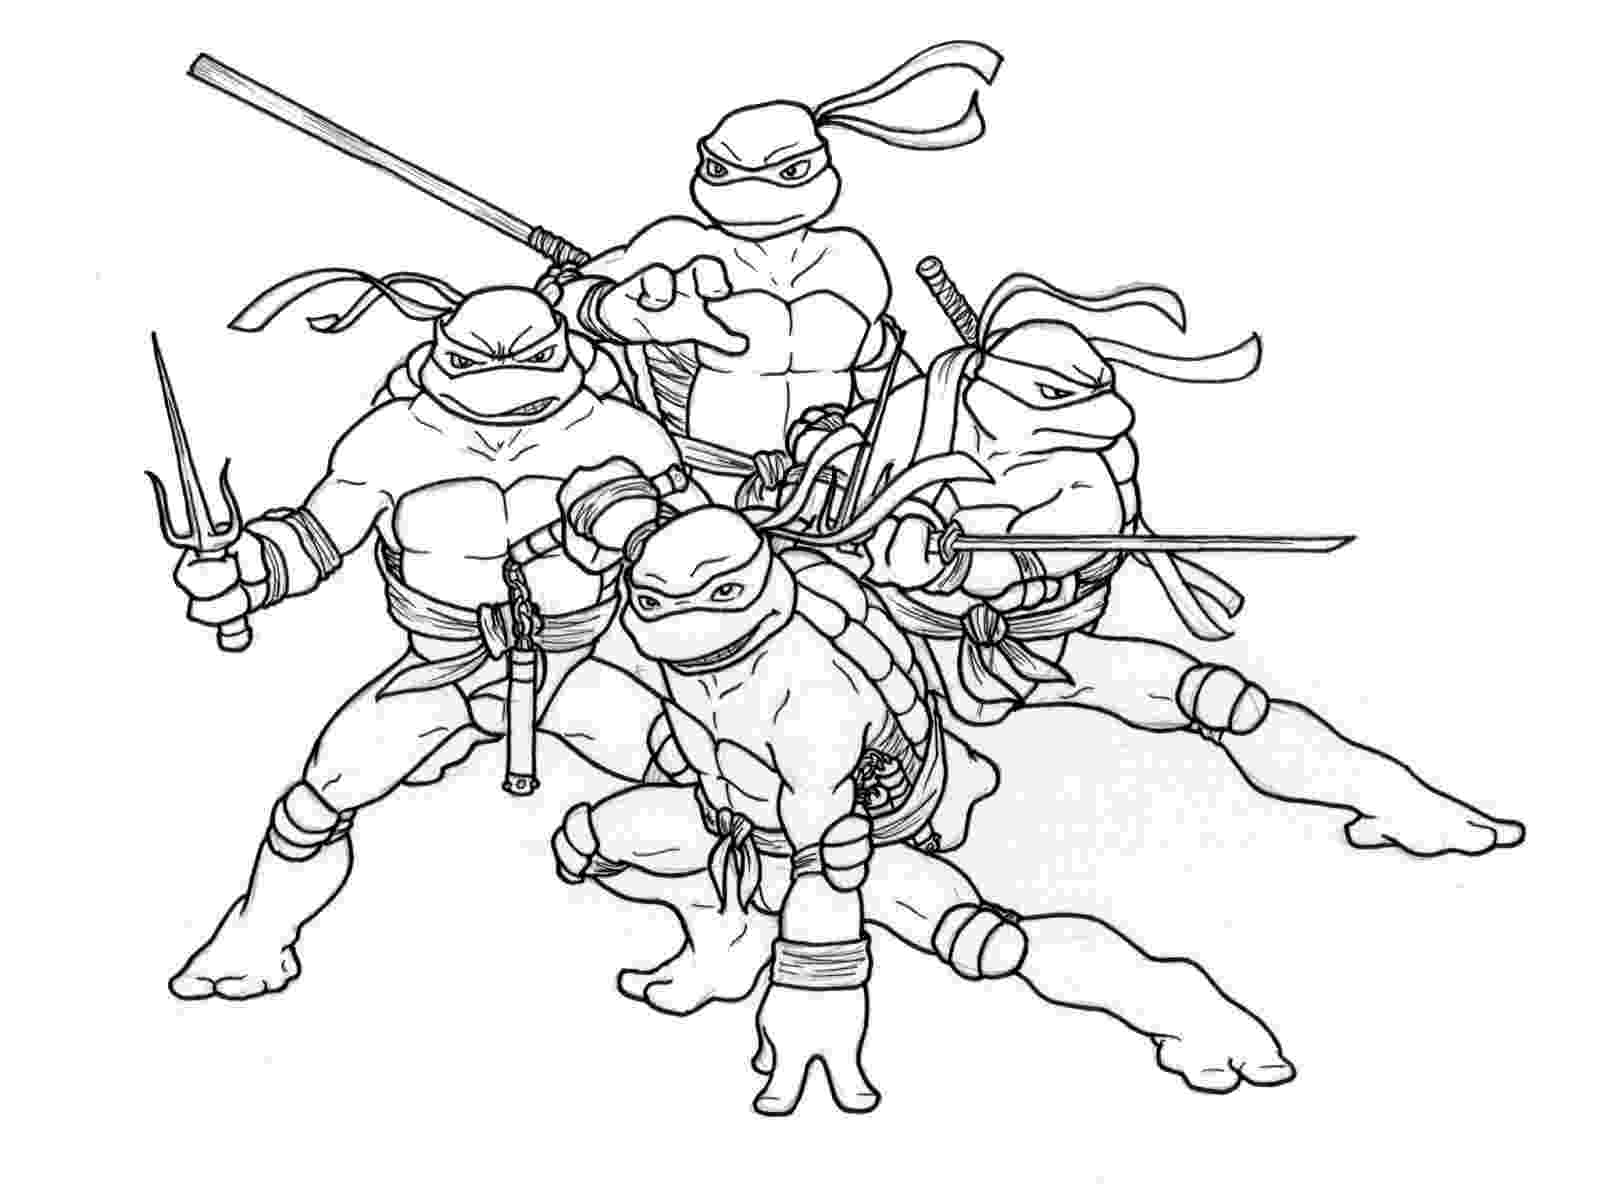 ninja turtle colouring pictures 2017 10 01 coloring pages galleries pictures turtle ninja colouring